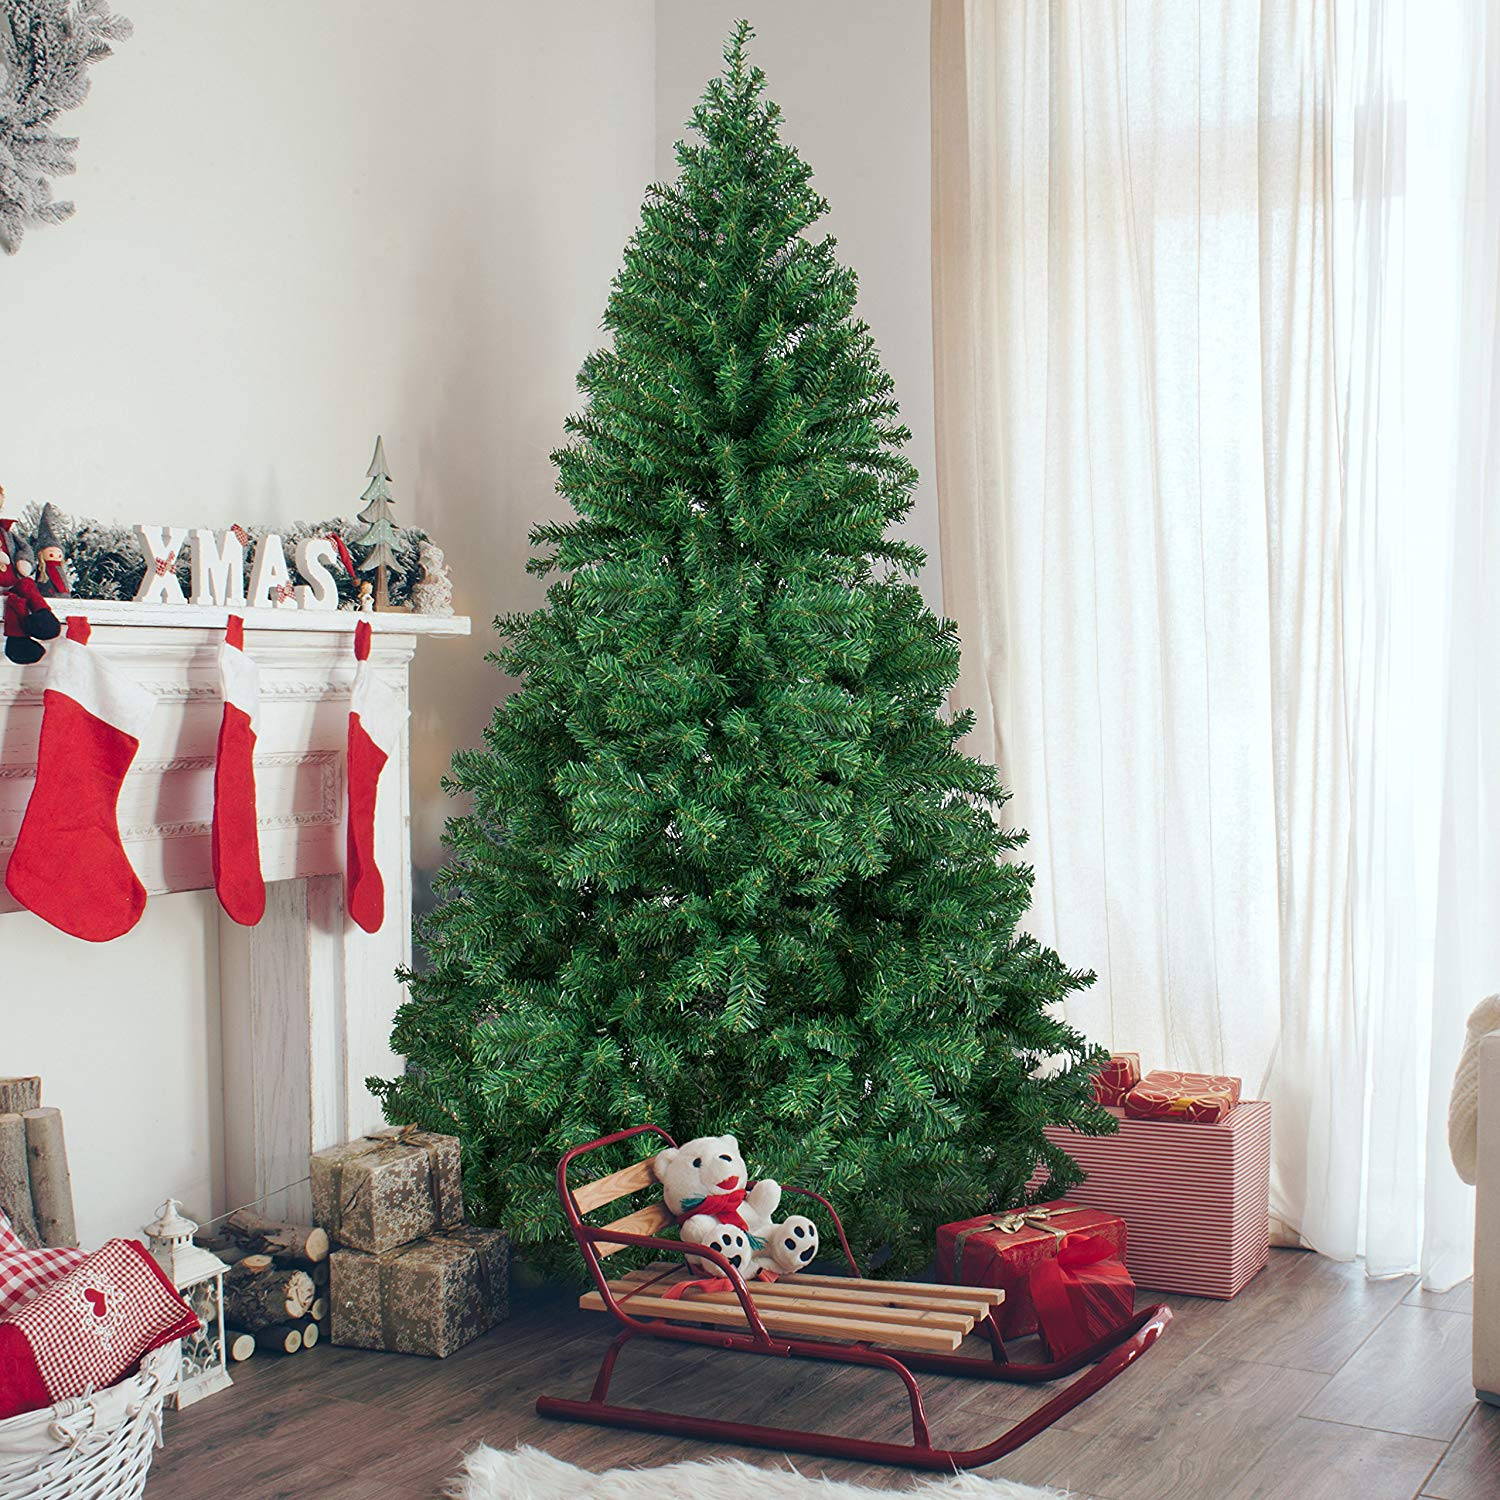 Best Choice Products 6' Premium Hinged Artificial Christmas tree